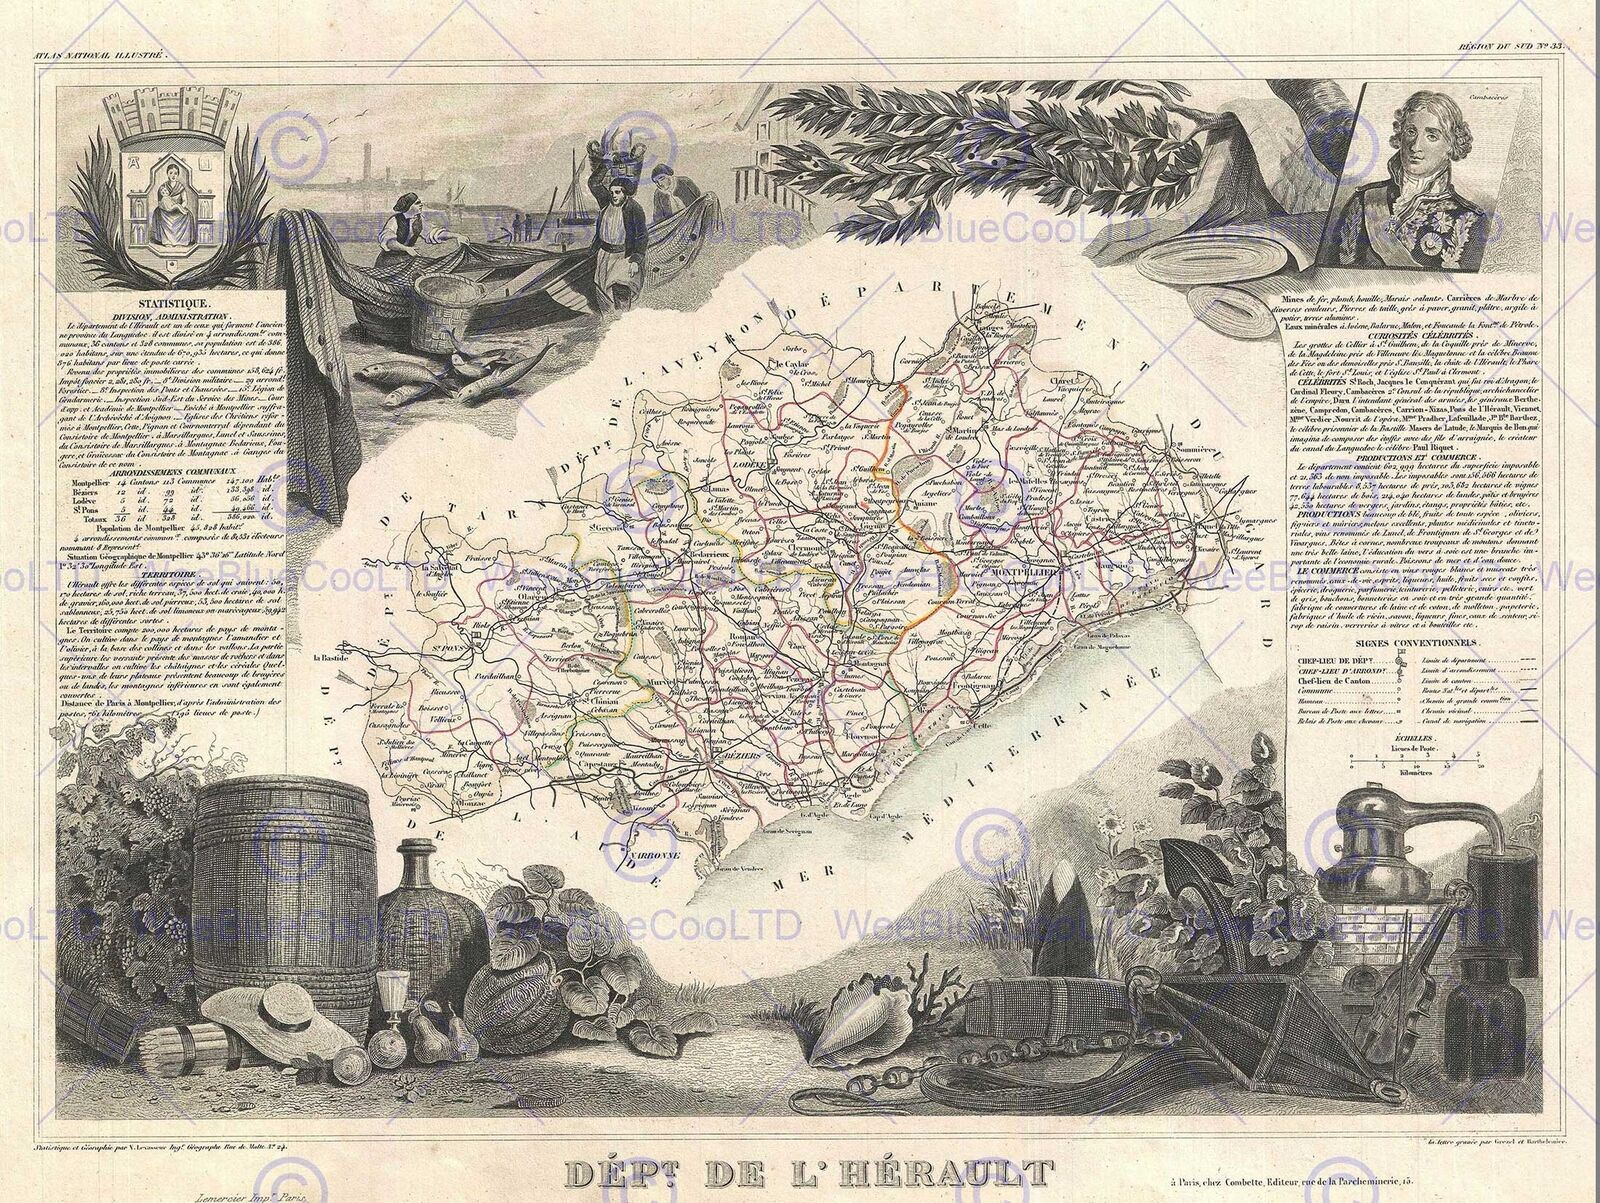 ISLE OF WIGHT VINTAGE ANTIQUE MAP ART PRINT Poster British County Hotel B/&B Room